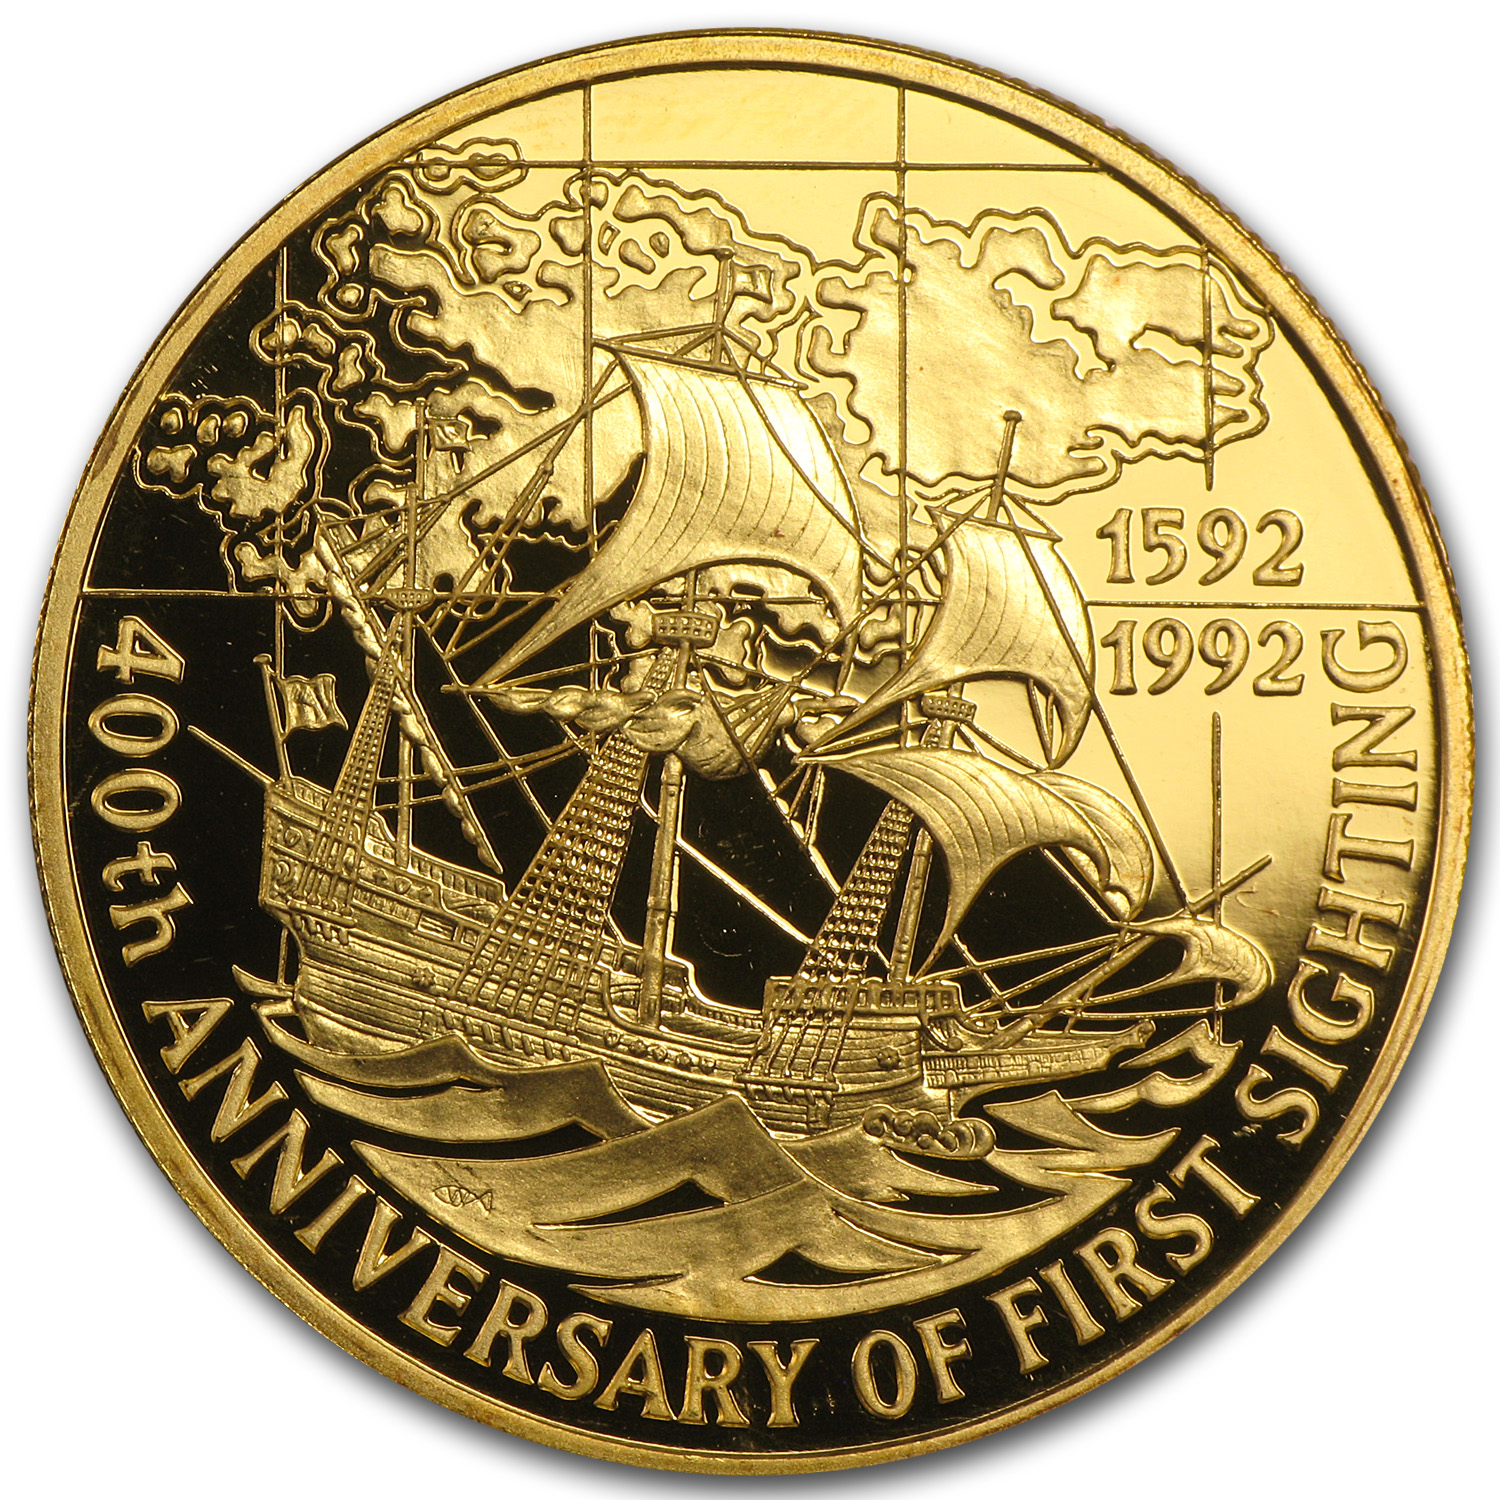 Falkland Islands 1992 Gold Proof 100 Pounds